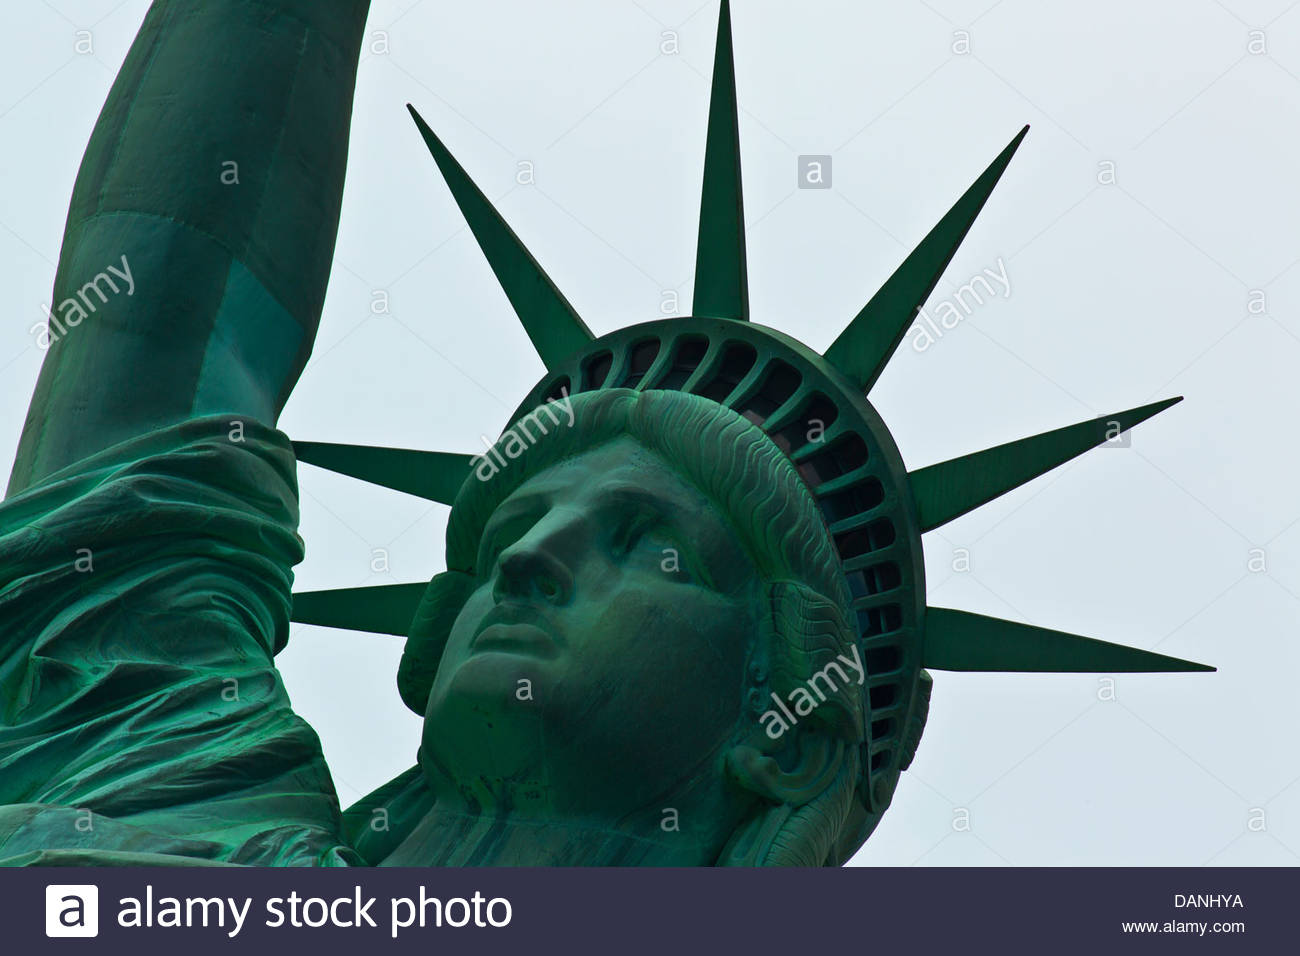 Statue of Liberty Liberty Island New York NY 2013 - Stock Image